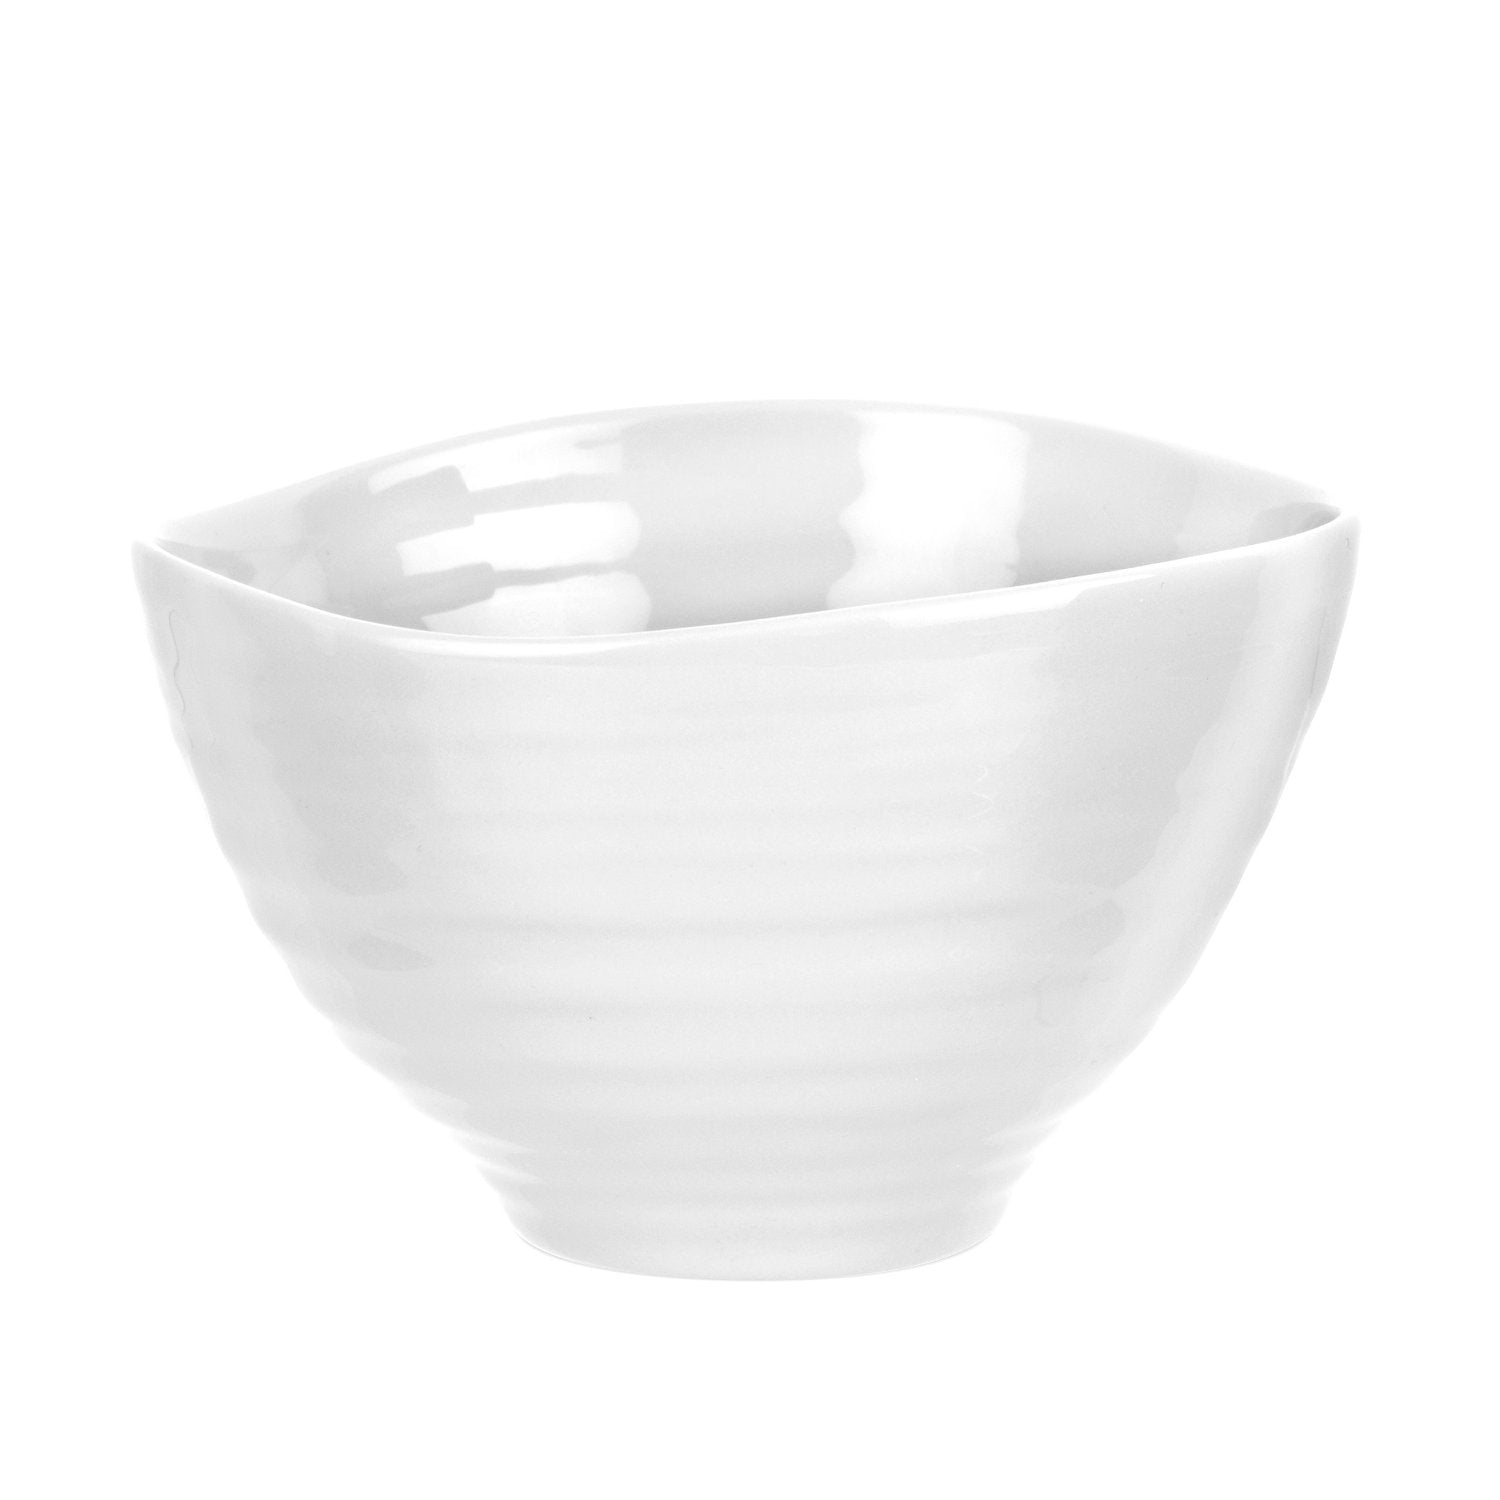 Sophie Conran White Sm Footed Bowl